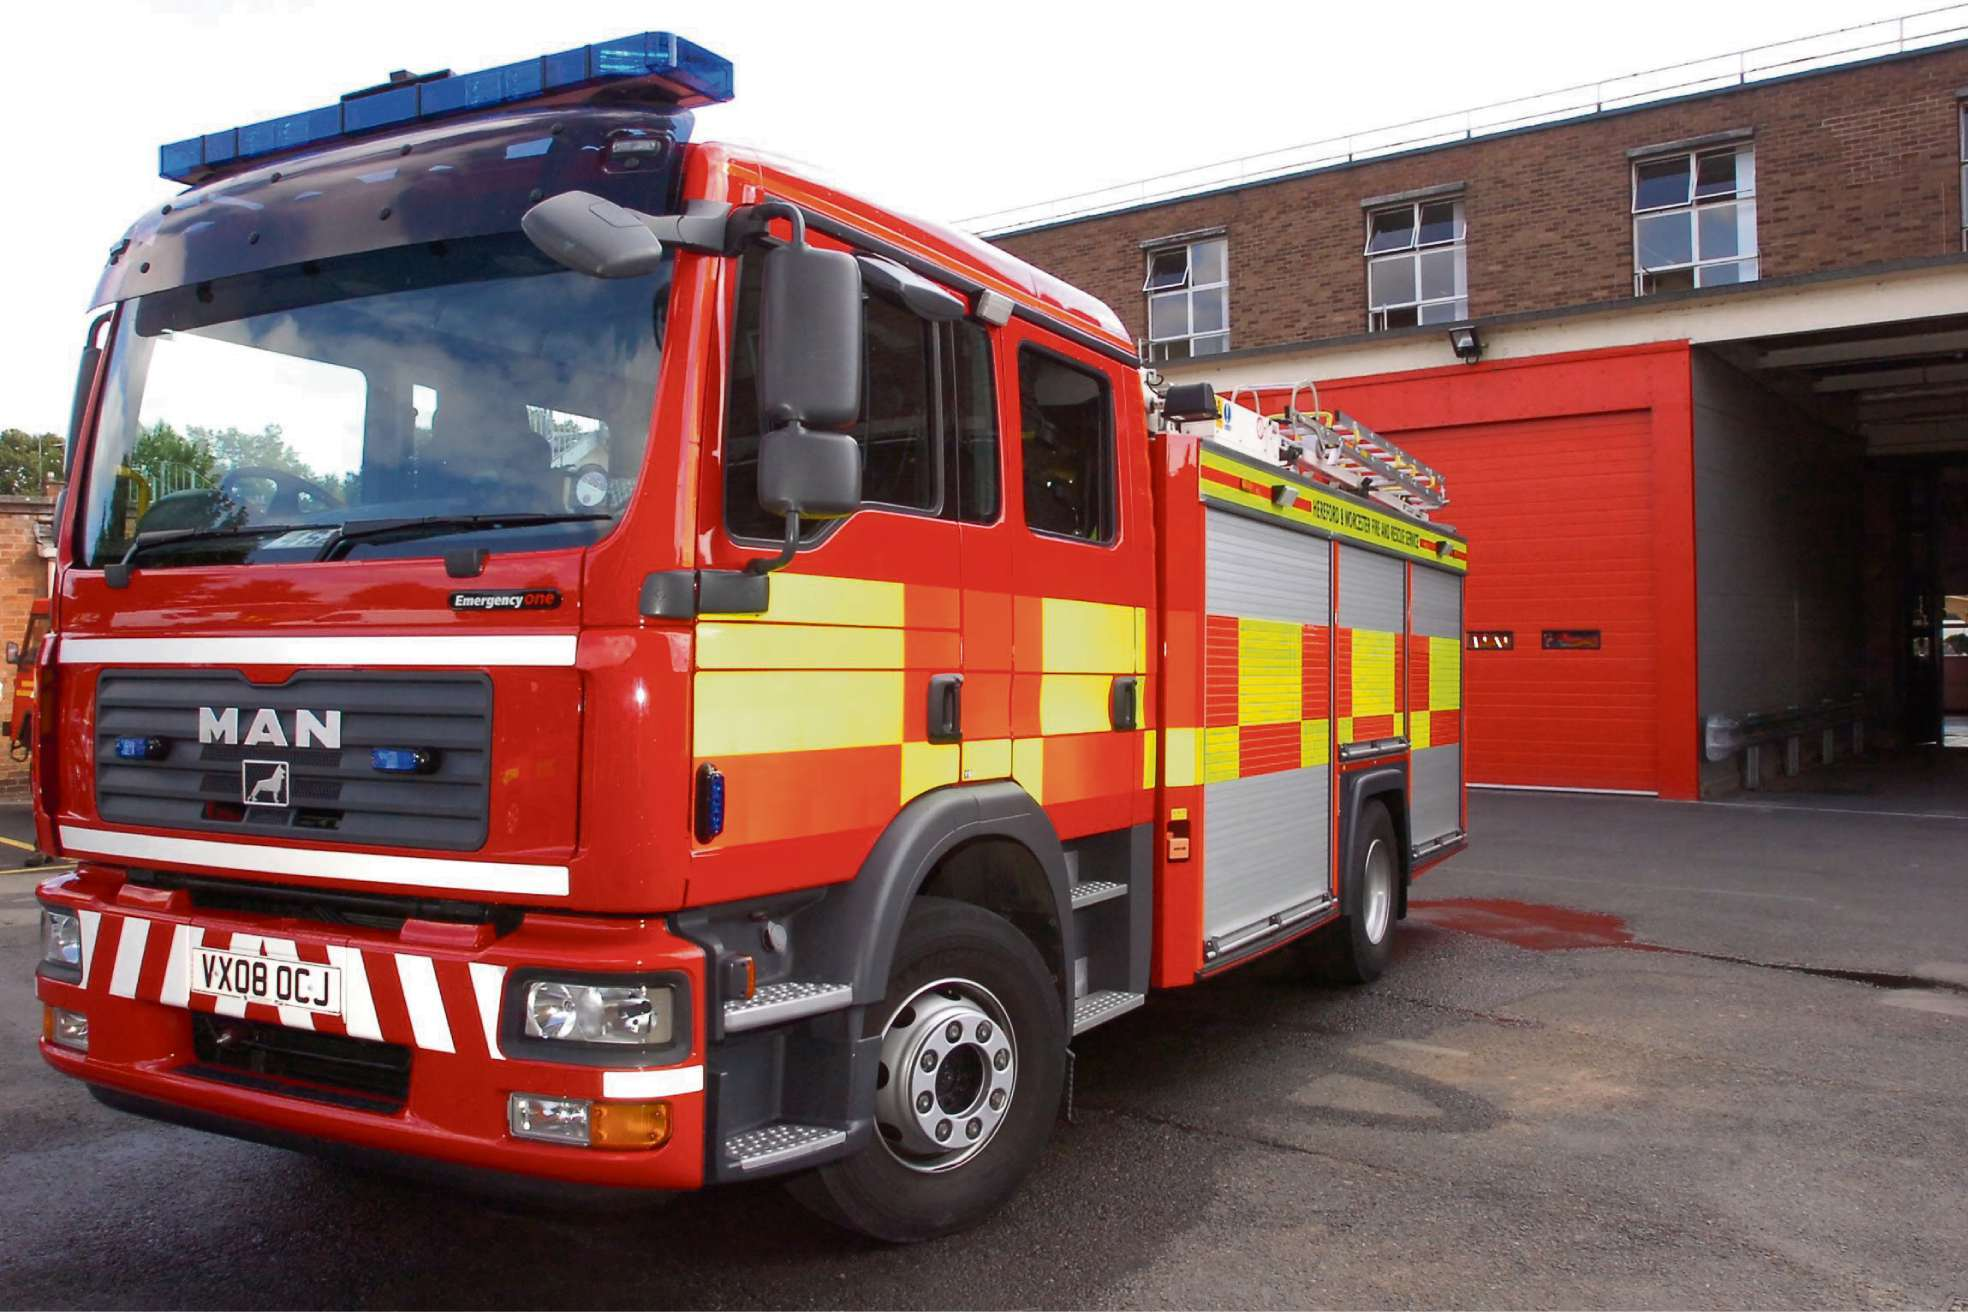 Fire crews extinguish fire in Rochford